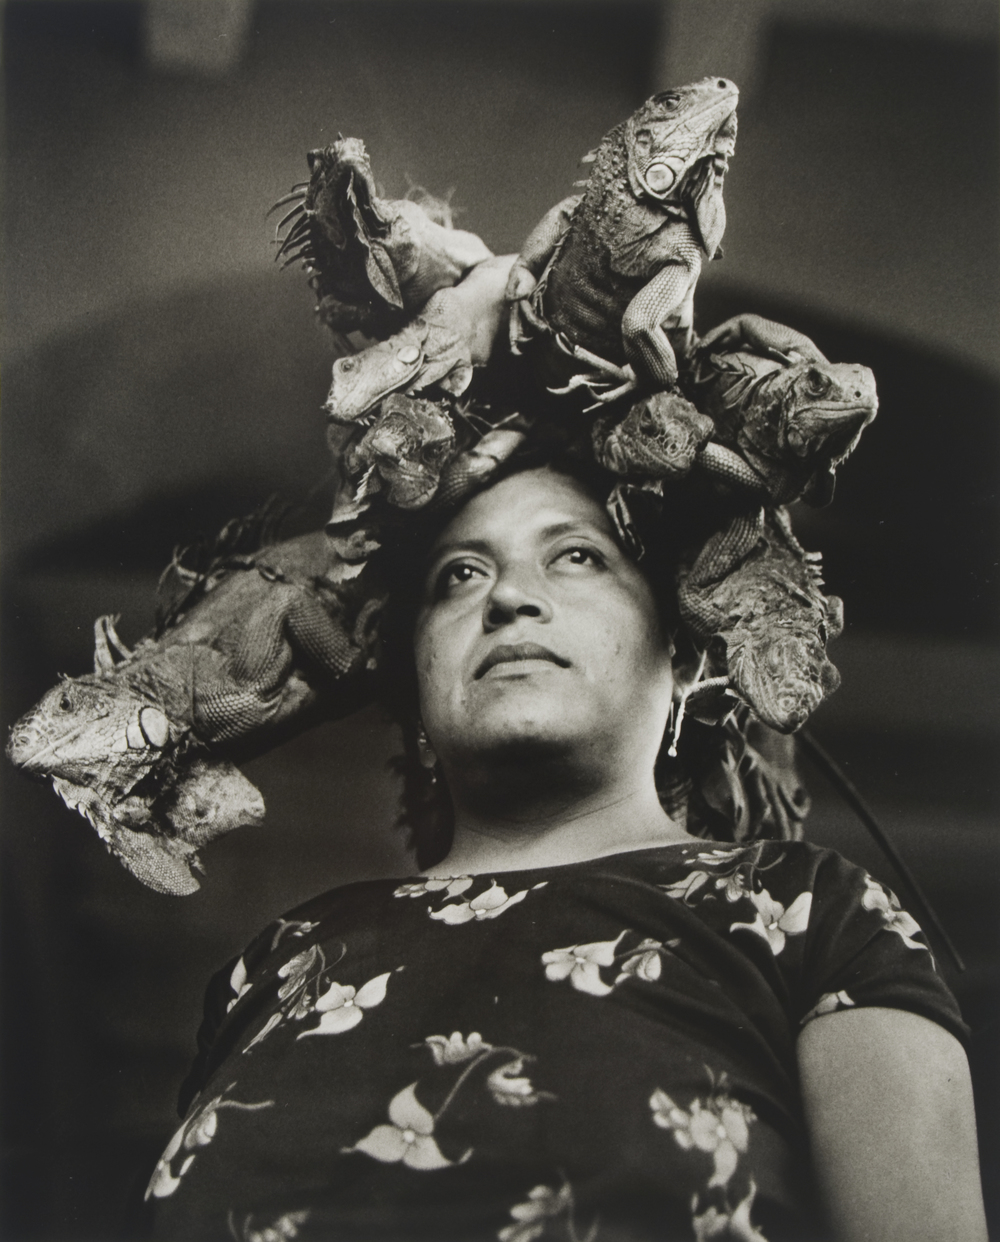 Graciela Iturbide (Mexican, b. 1942), Notre-Dame des Iguanes, Juchitàn, Oaxaca, 1979; 2007:337  Graciela Iturbide is famous for her pictures of Mexico, particularly its indigenous population, though later projects have taken her to India and the American South in her exploration of modern culture. In particular she is known for her master work  Juchitán of Women , a decade long project begun in 1979 when artist Francisco Toledo invited a group including Iturbide to visit Juchitán, a small town in southern Mexico's Tehuantepec Isthmus. This Zapotec Indian town had a distinct culture and way of life, notable for the dominance of women in commercial and political spheres.